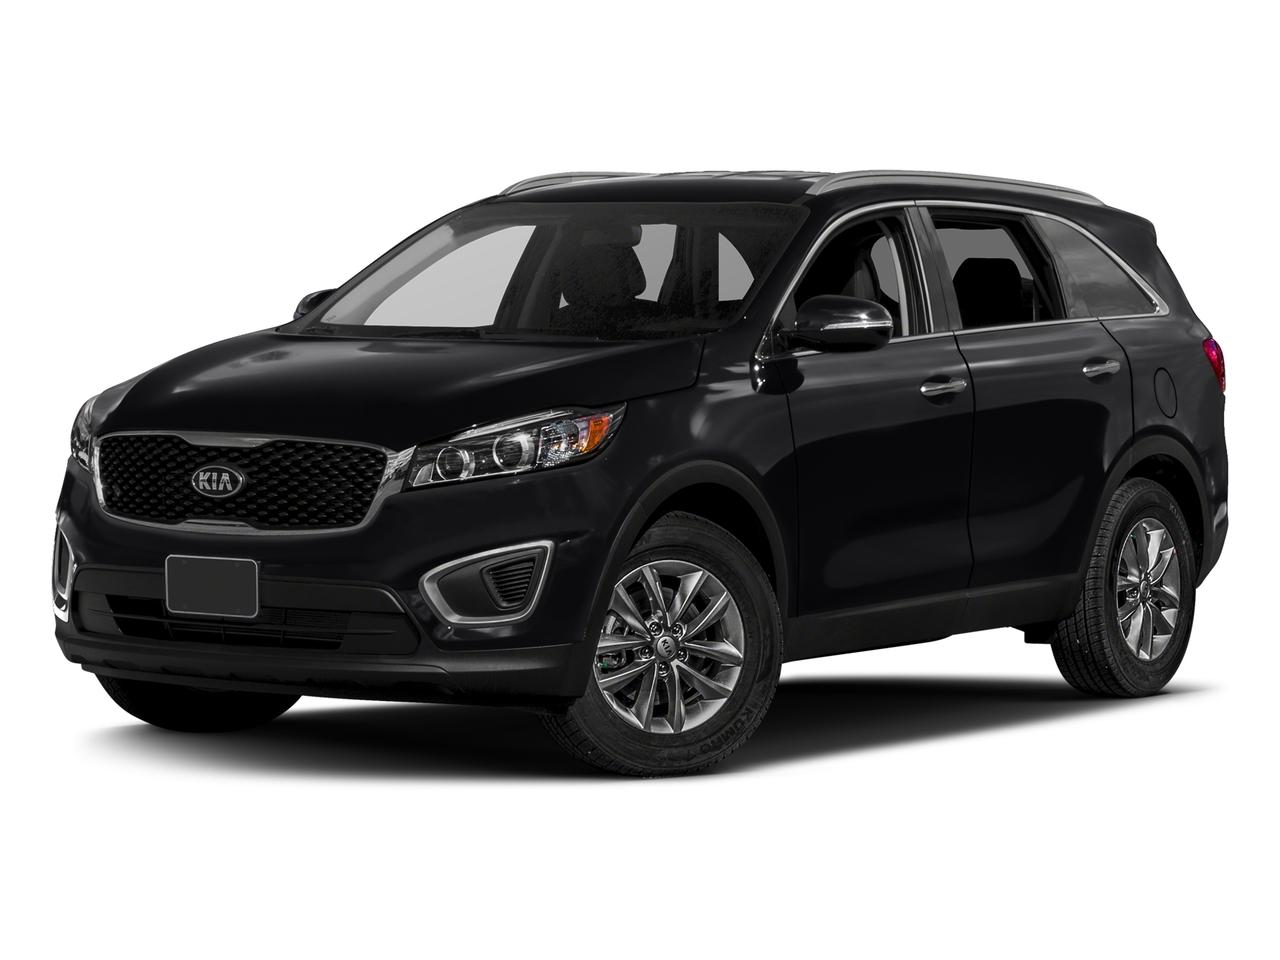 2017 Kia Sorento Vehicle Photo in Decatur, IL 62526